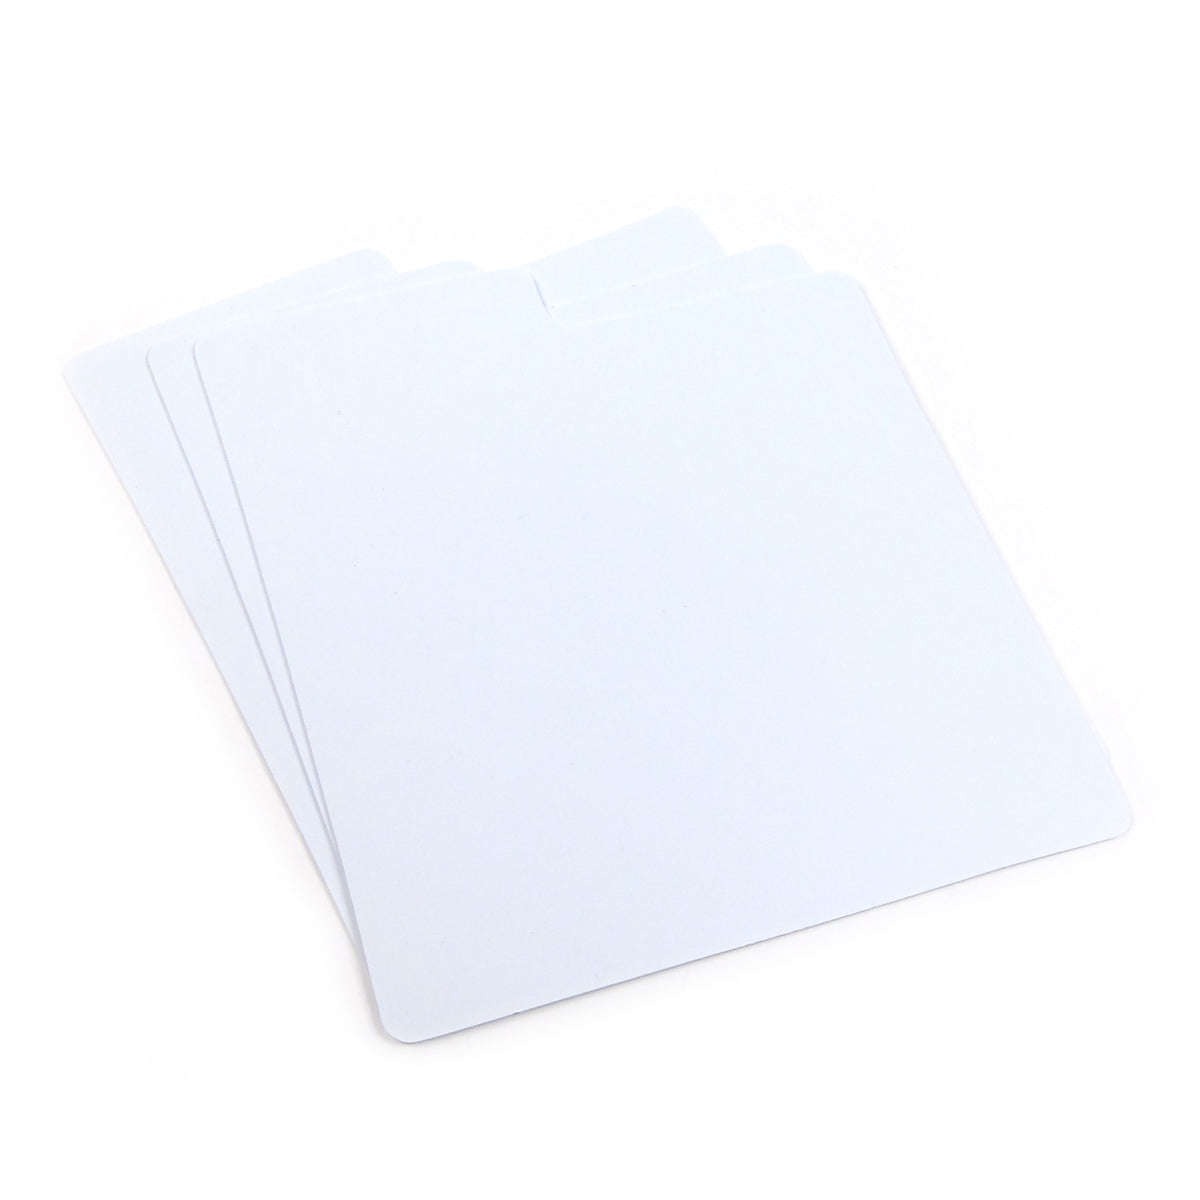 "Record Supply Co: 7"" Dividers (10 Units)"